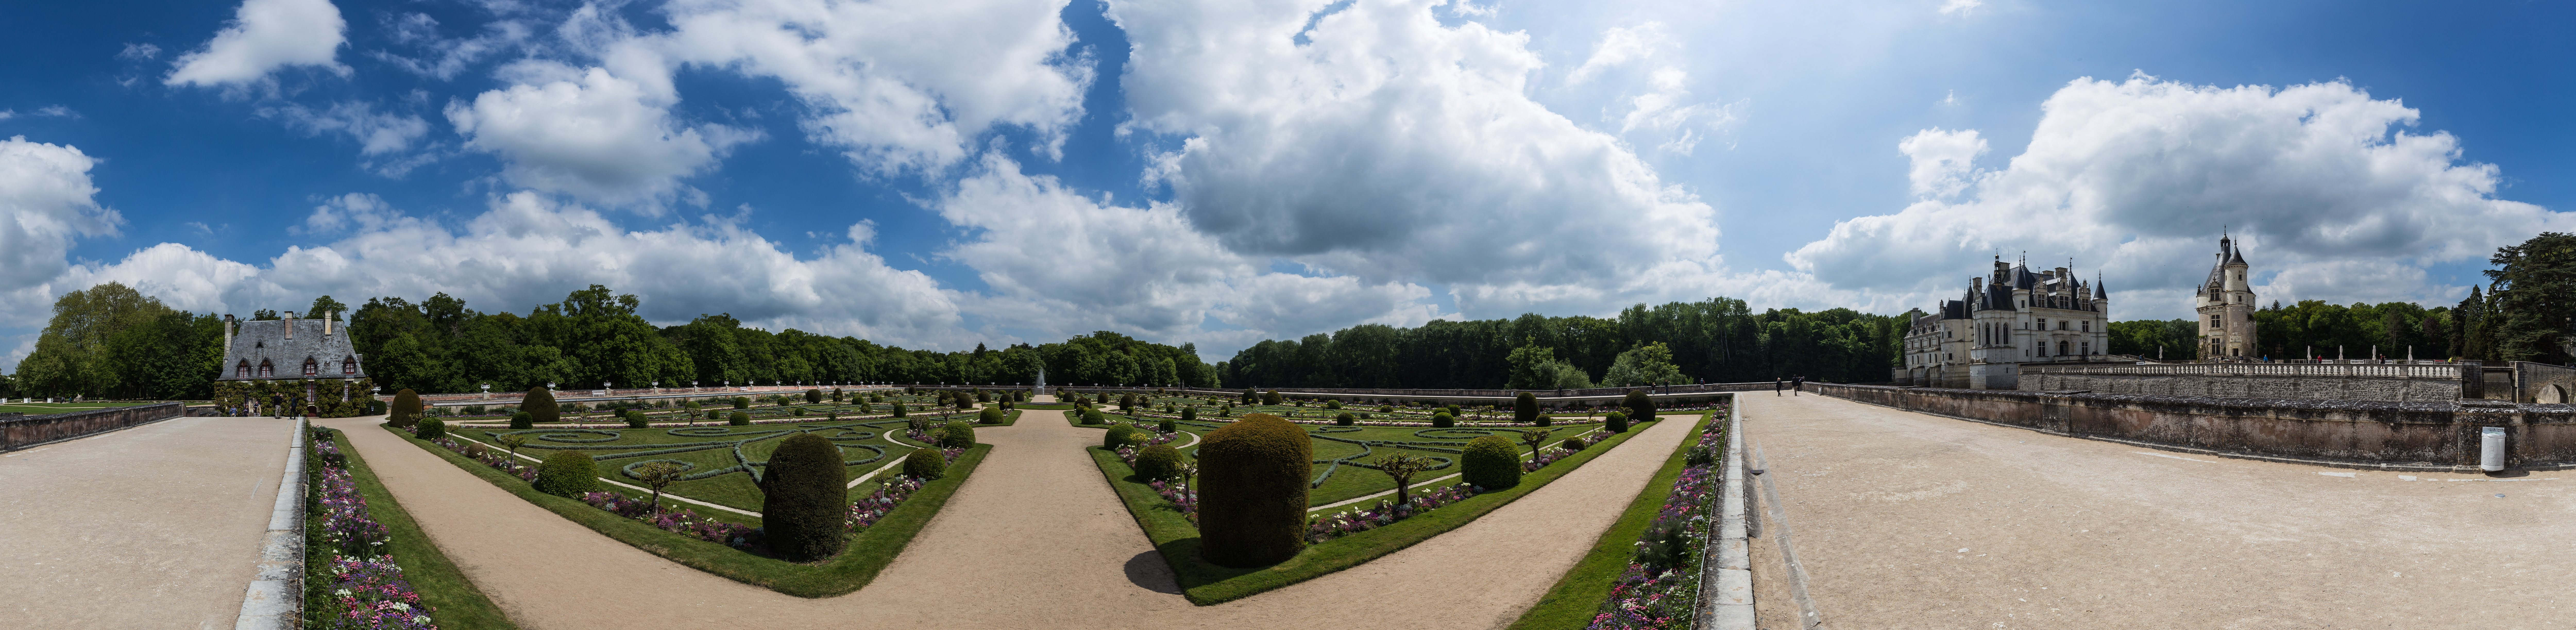 Panorama Schloss Chenonceau